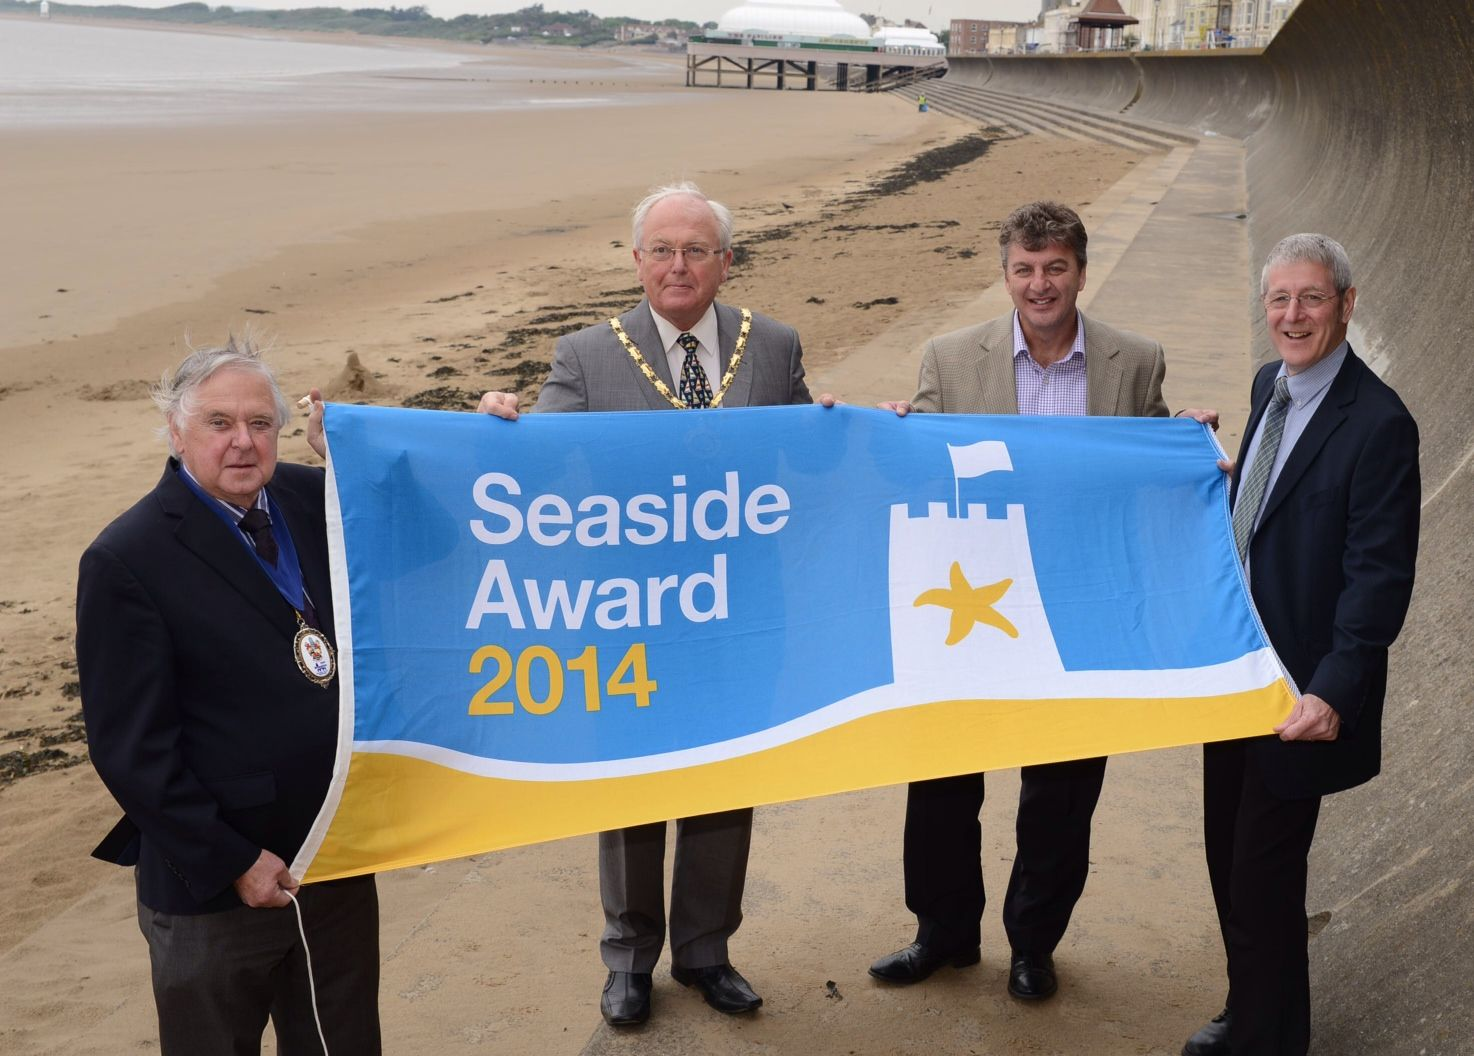 Burnham Deputy Mayor Dennis Davey, chairman of Sedgemoor District Council Peter Downing, and dean Nuralli and Phil Perkins from Sedgemoor District Council